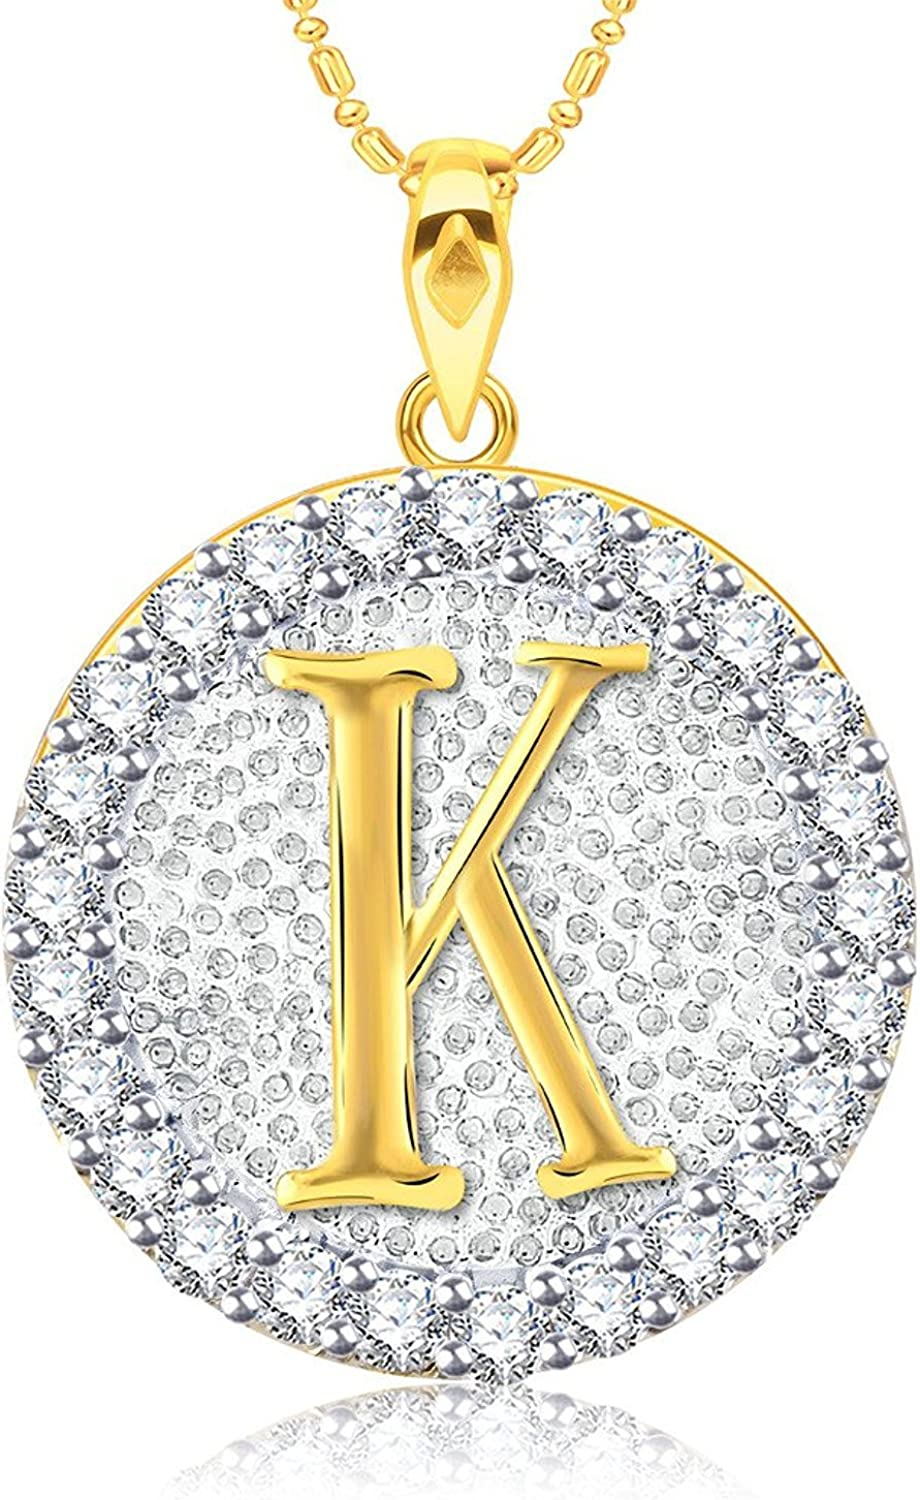 Simulated Diamond Studded Musical Sign Pendant Necklace in 14K Yellow Gold Plated With Box Chain